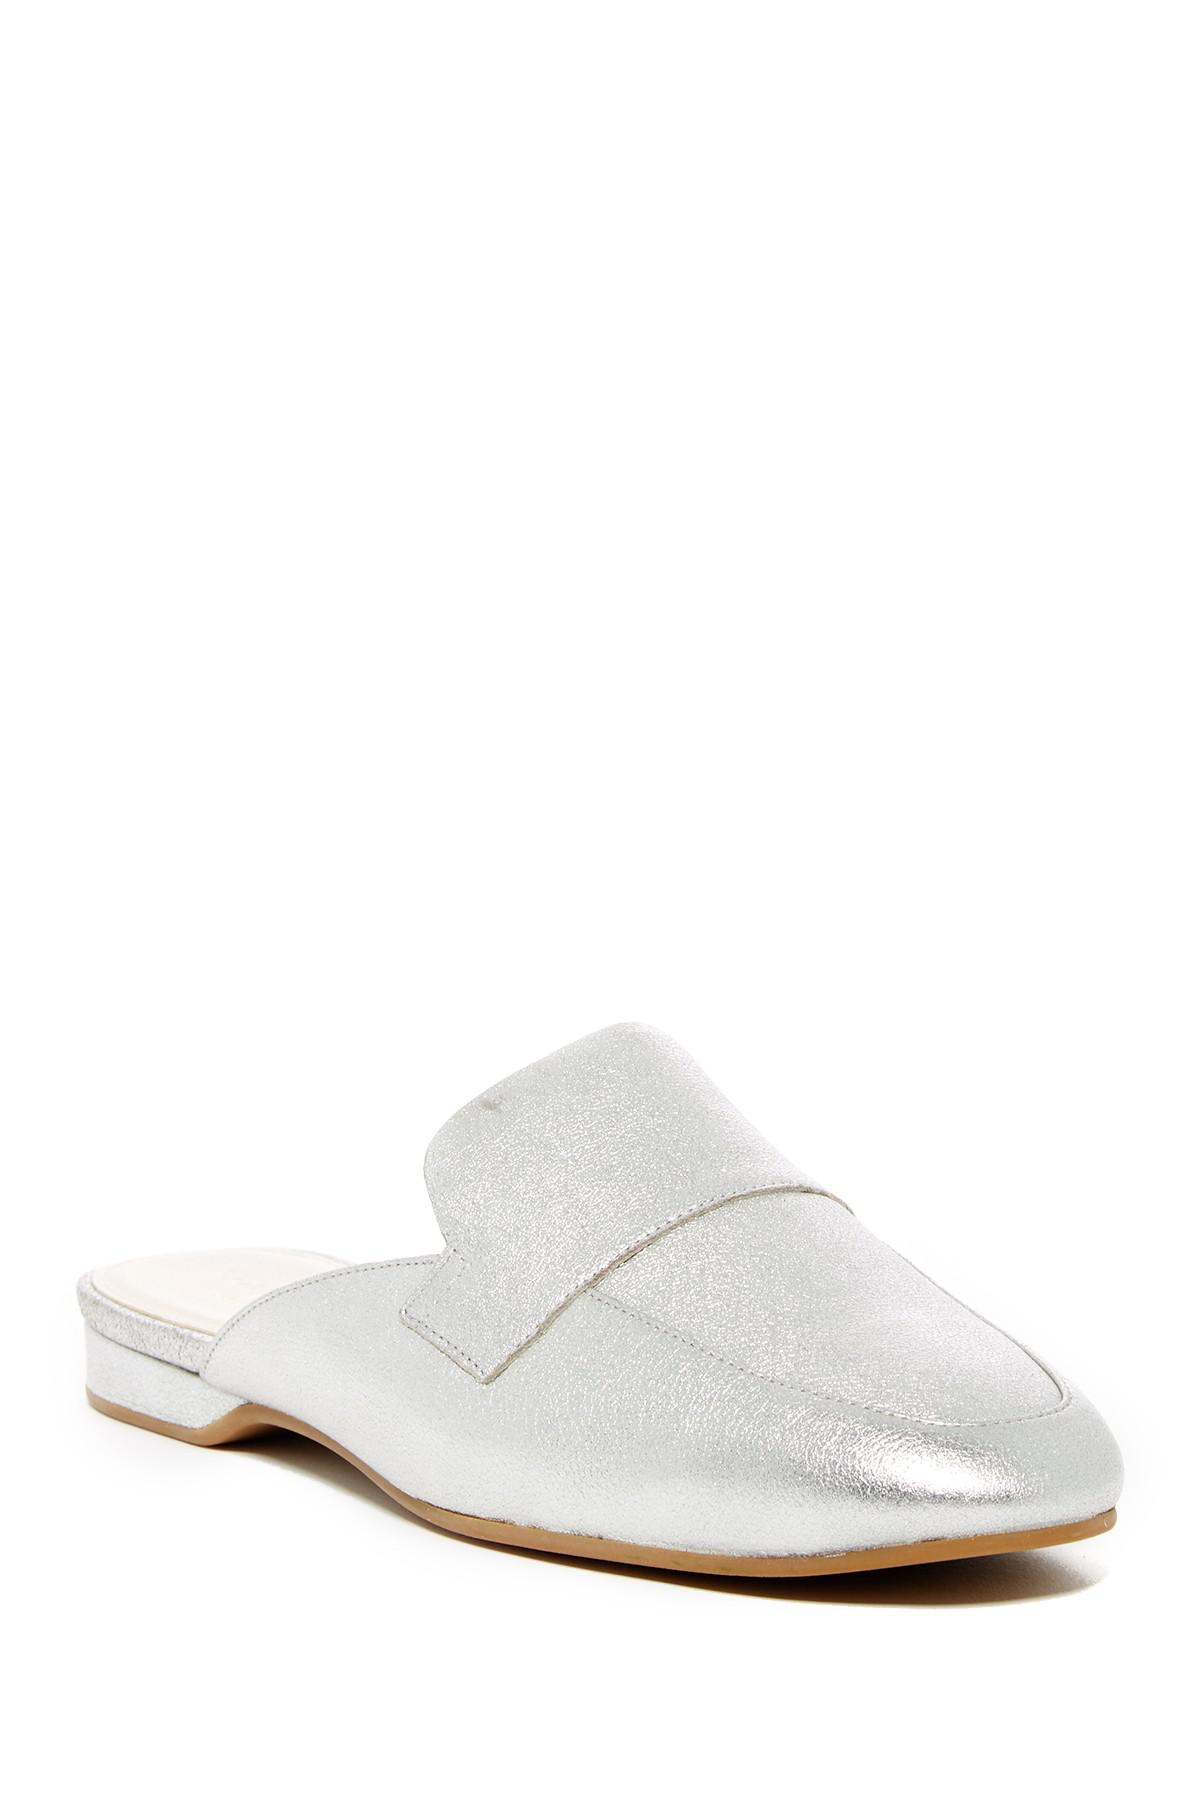 Cole Haan Delcie Loafer Mule II (Women's)